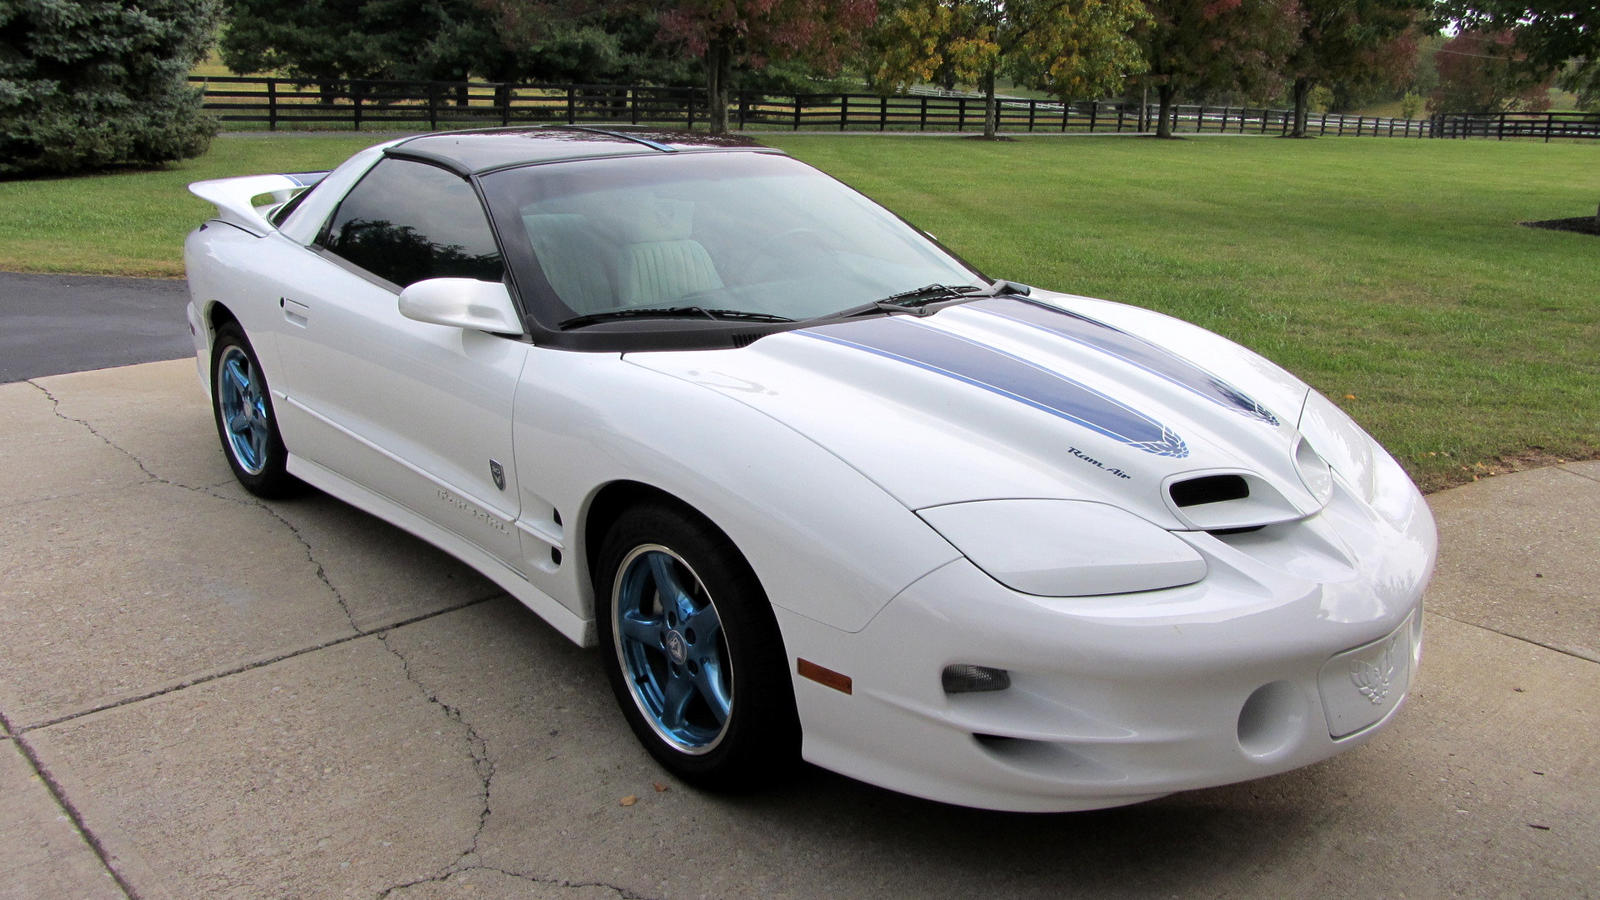 Pontiac th anniversary trans am by jeffry on